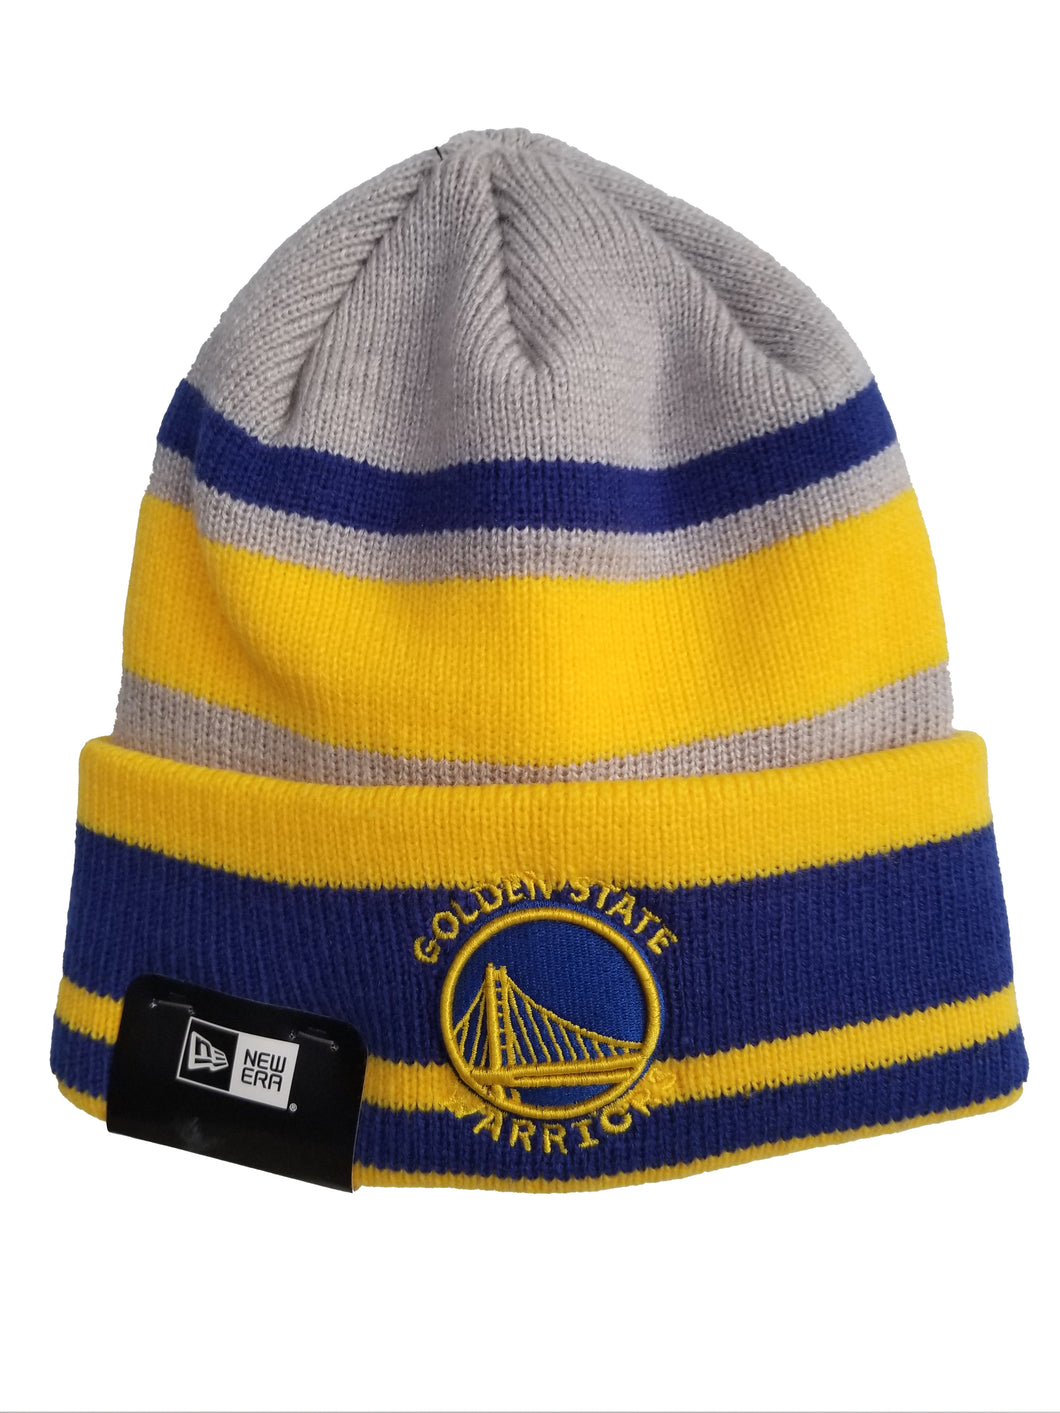 Golden State Warriors New Era Knit Layer Cap Gray